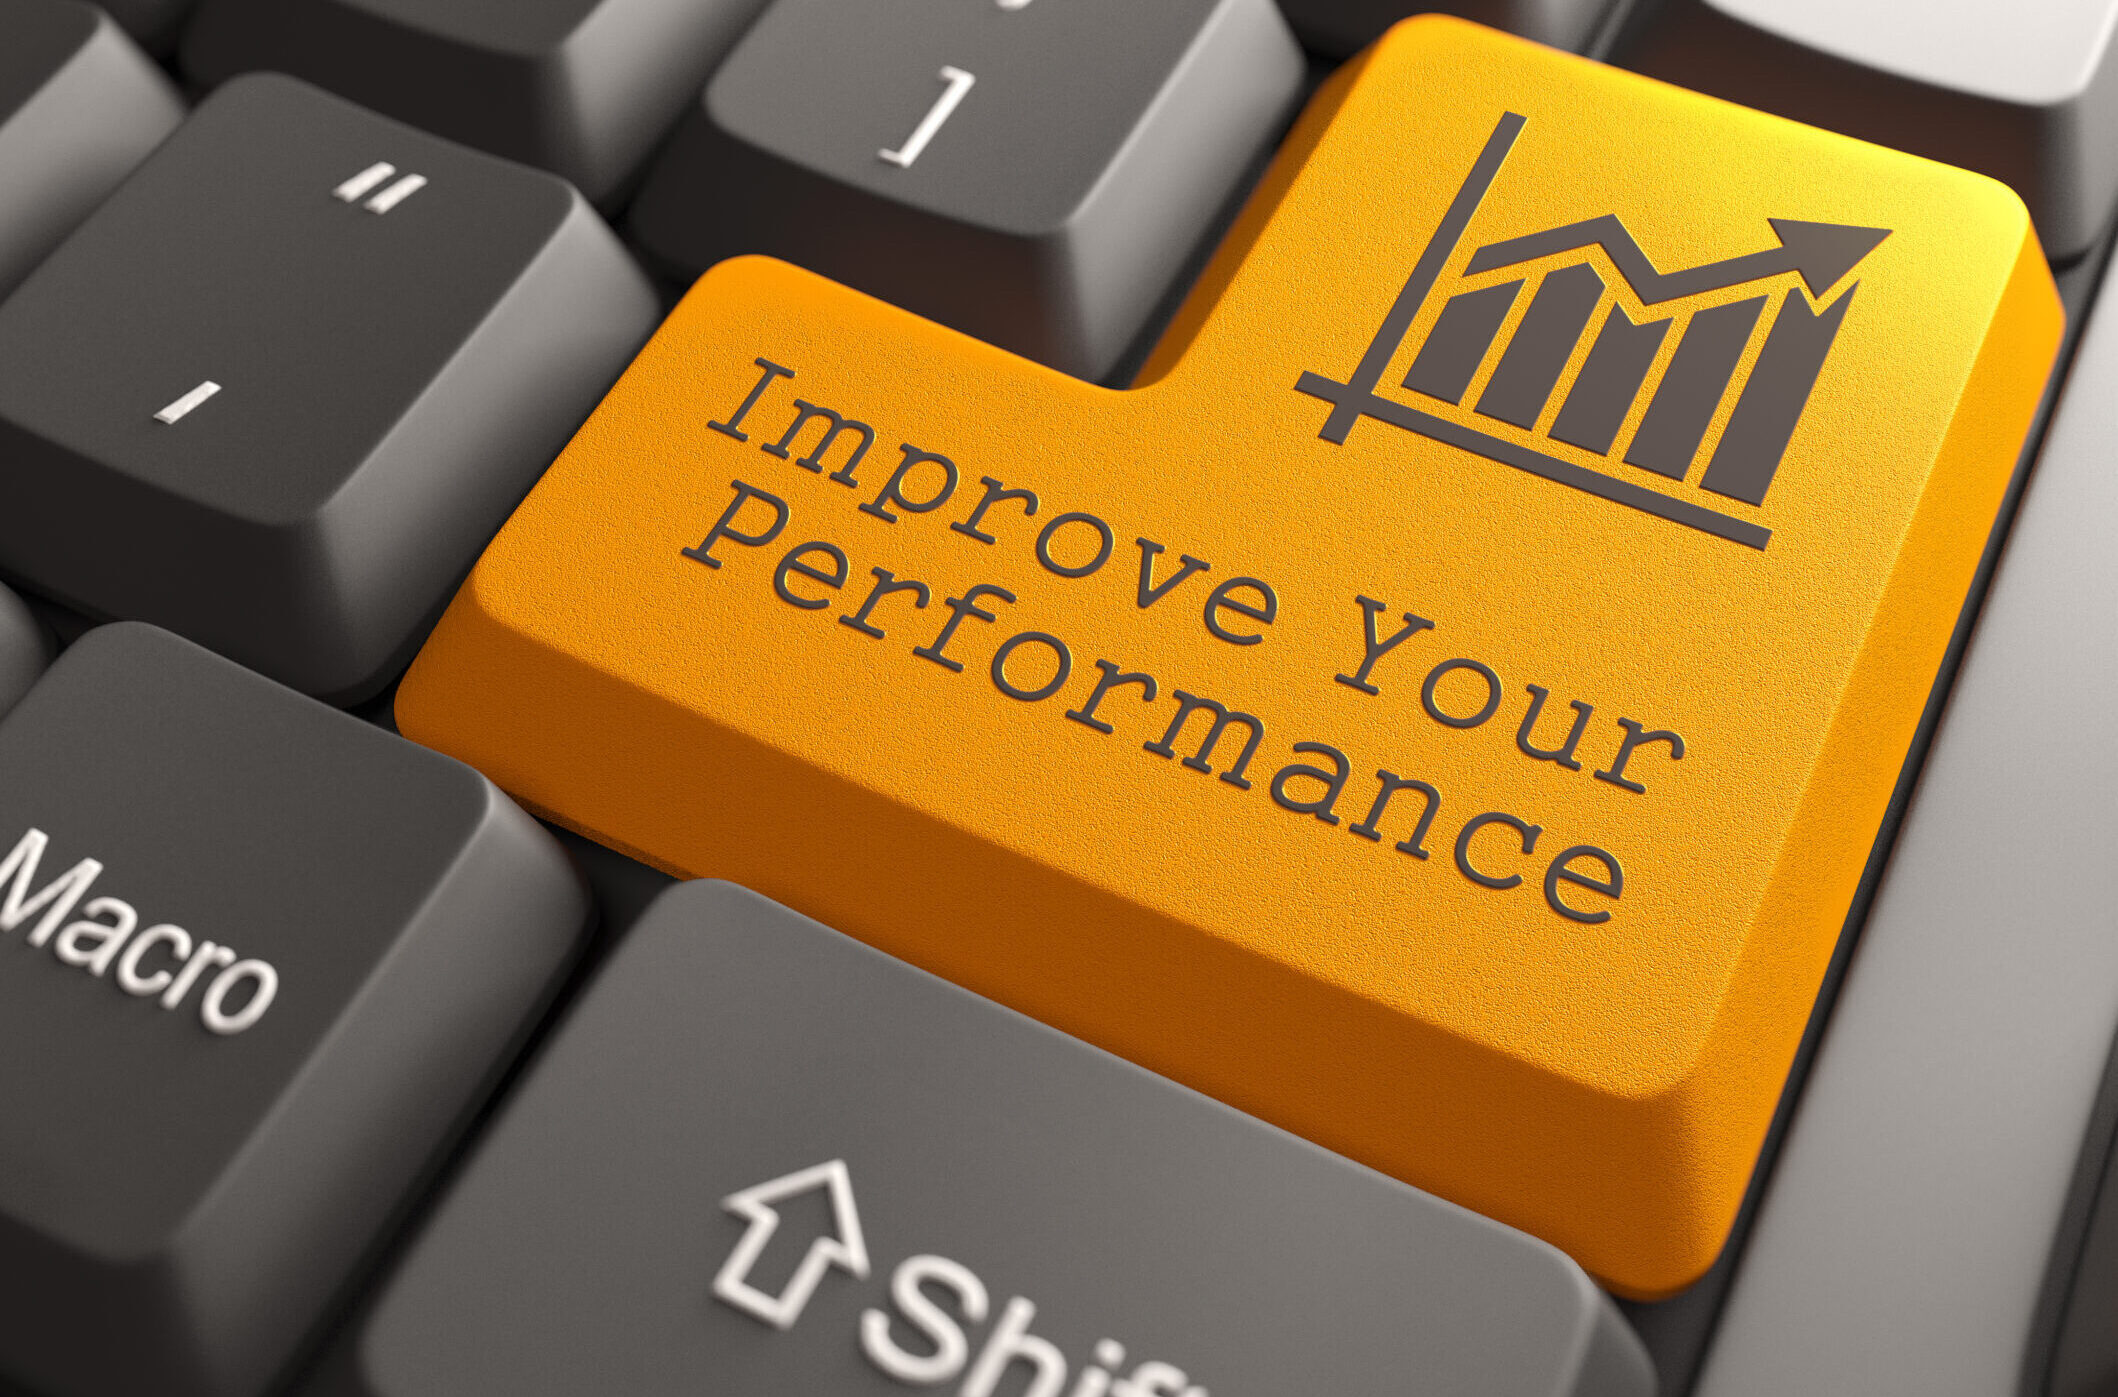 5 tips to increase productivity and empower your employees